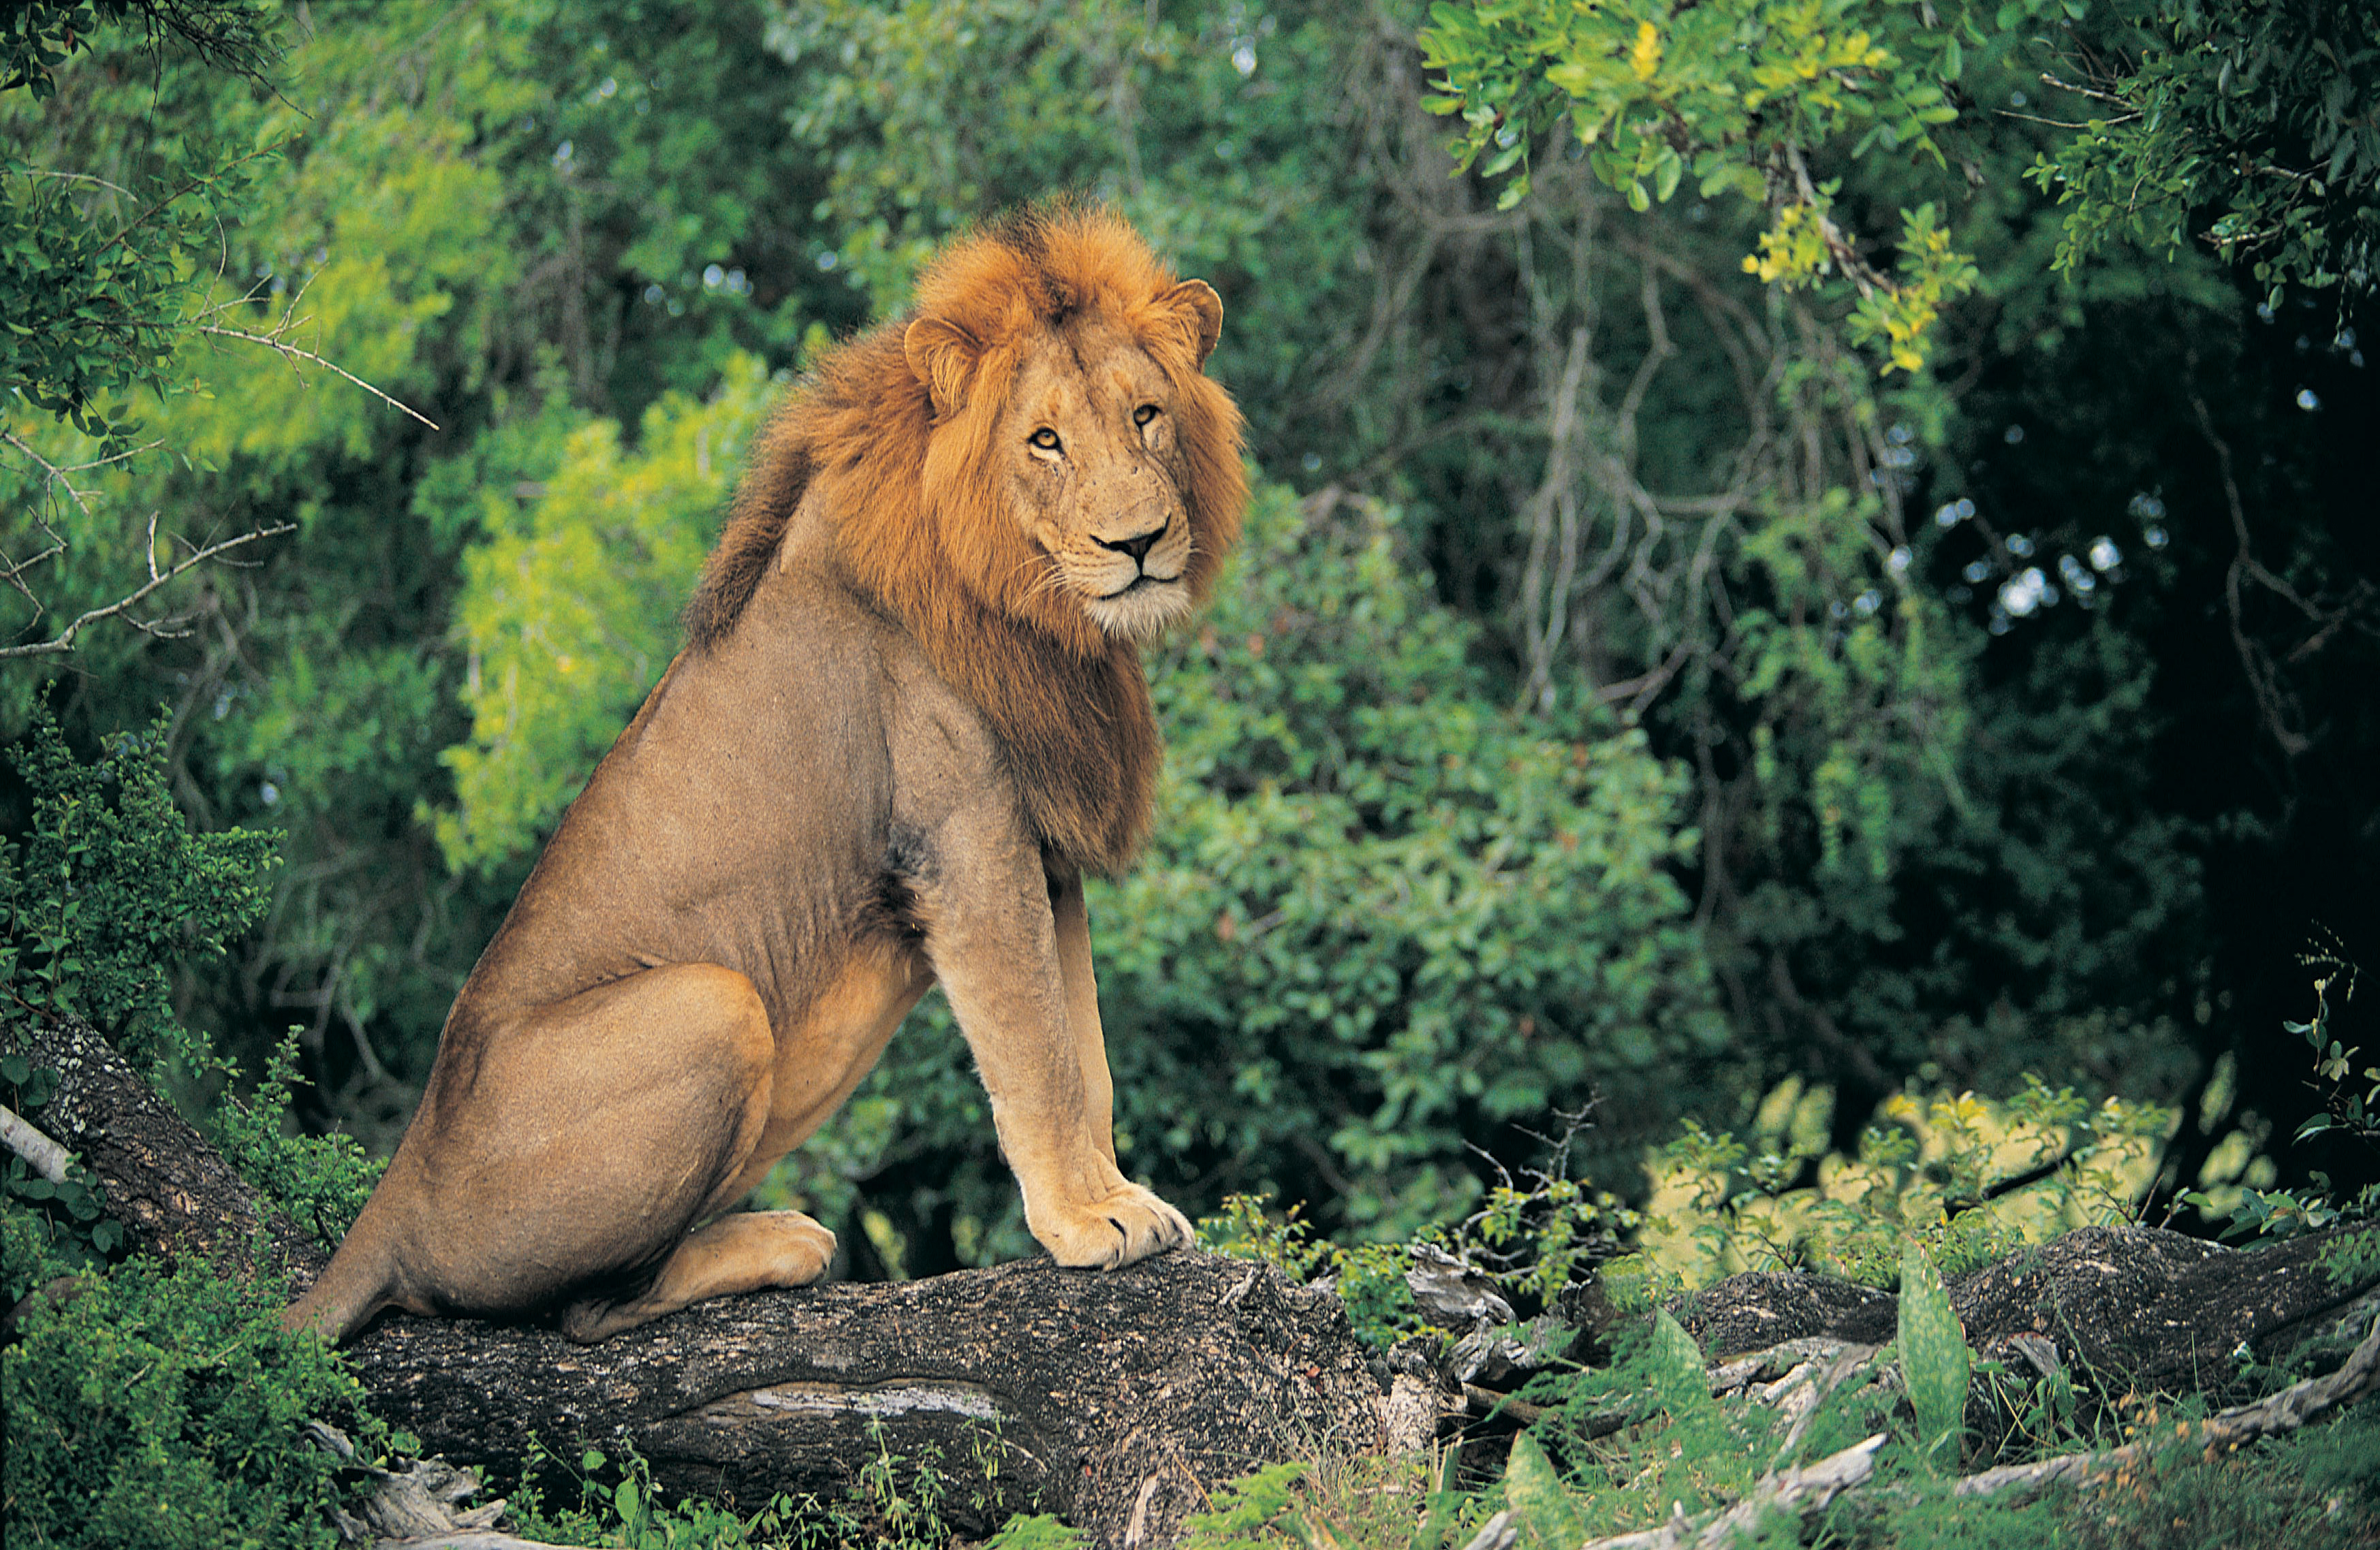 Where Do Lions Shelter in the Wild? | Sciencing